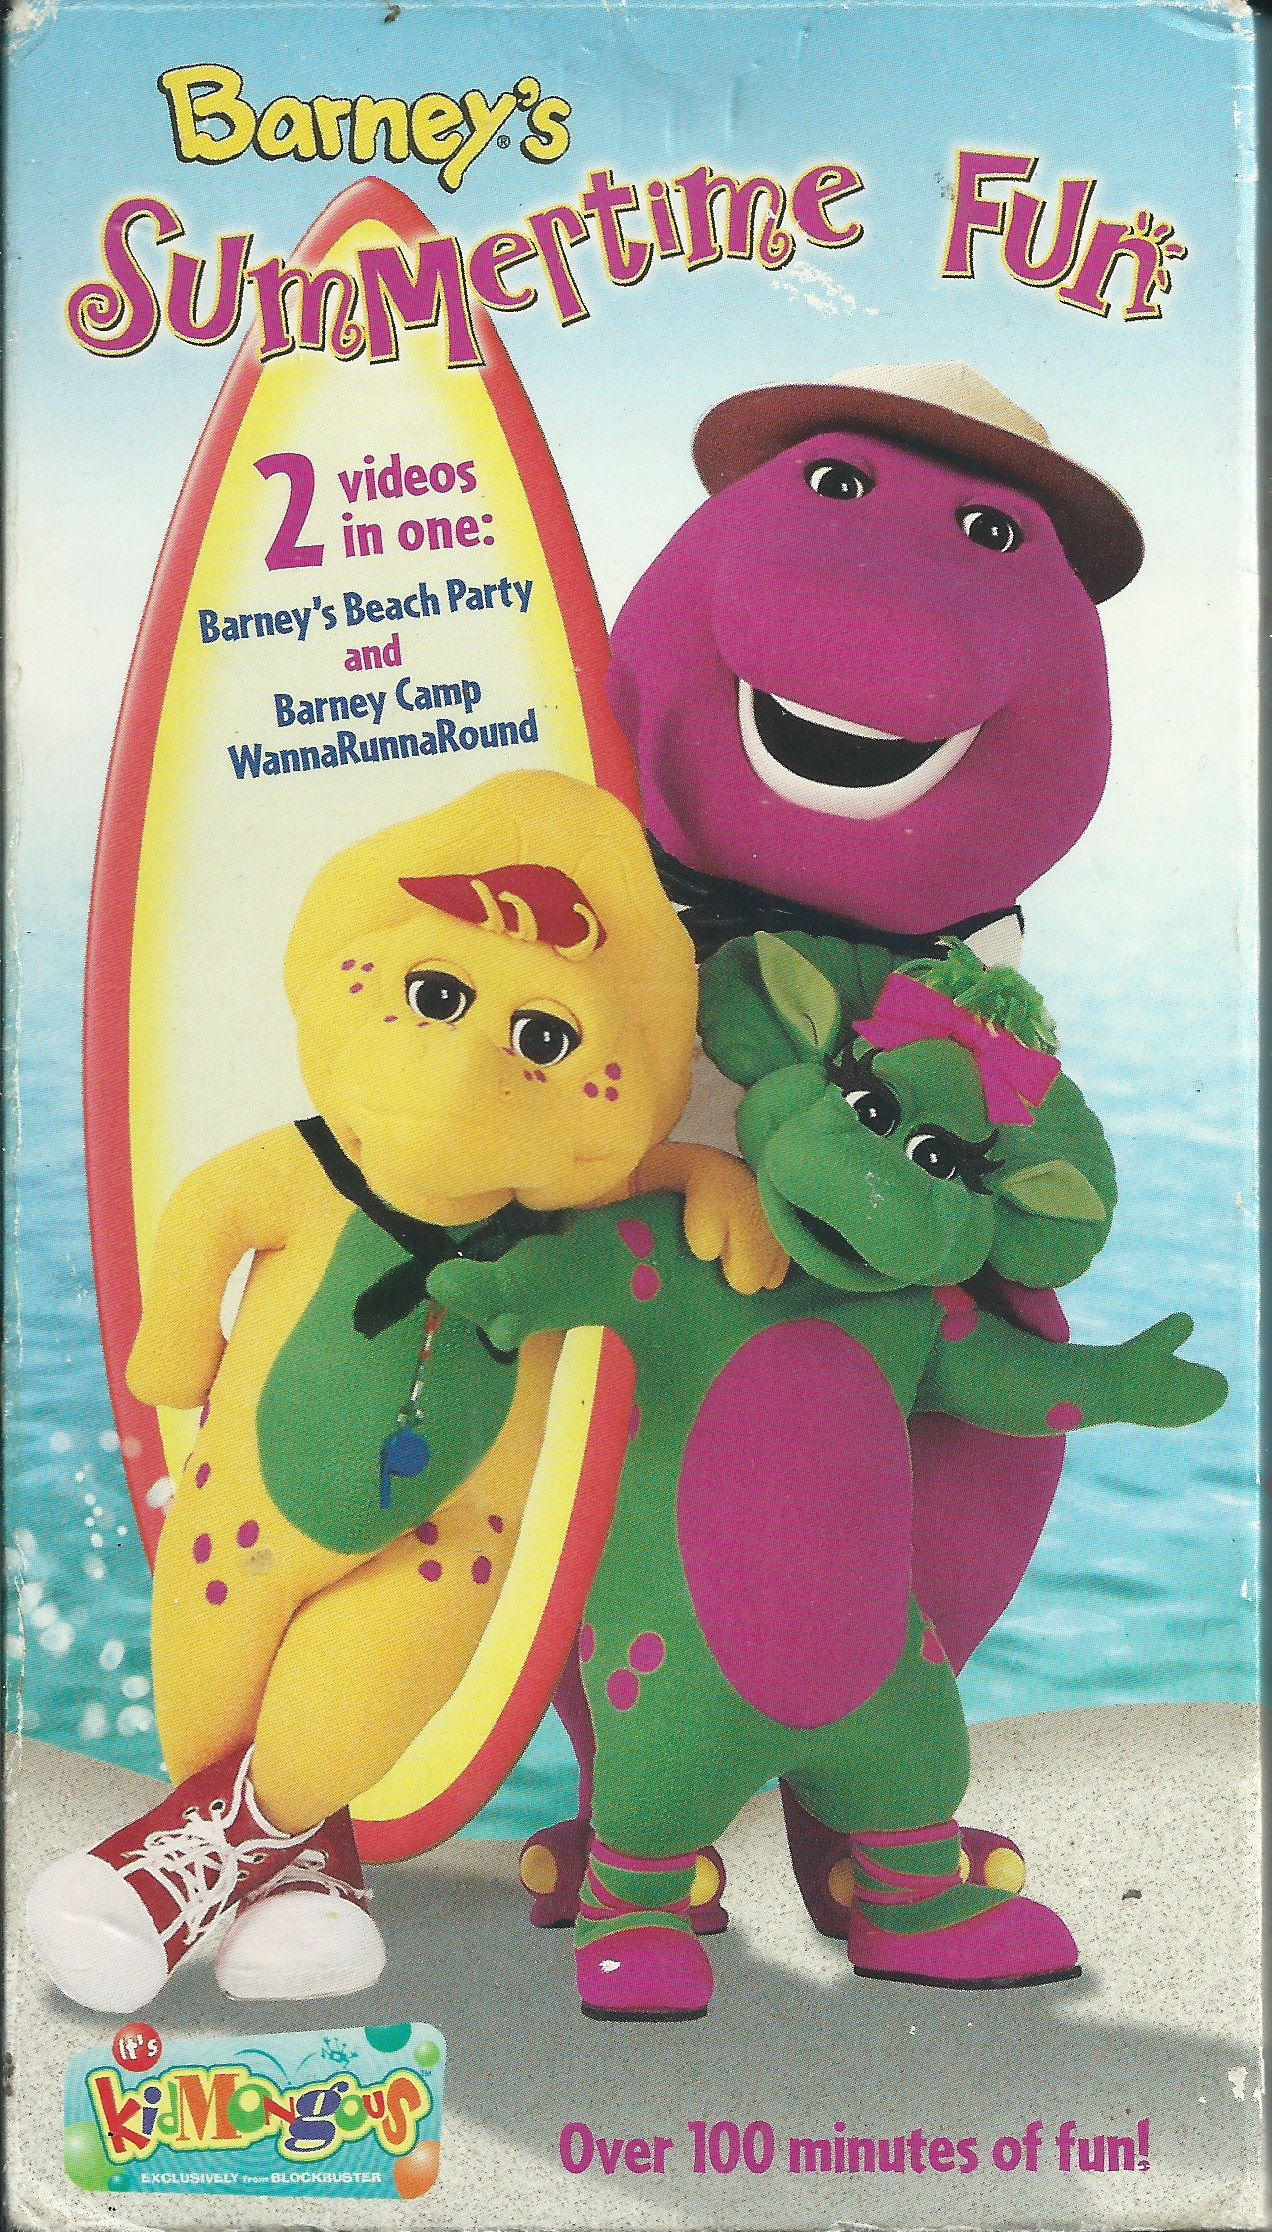 Barney's Summertime Fun